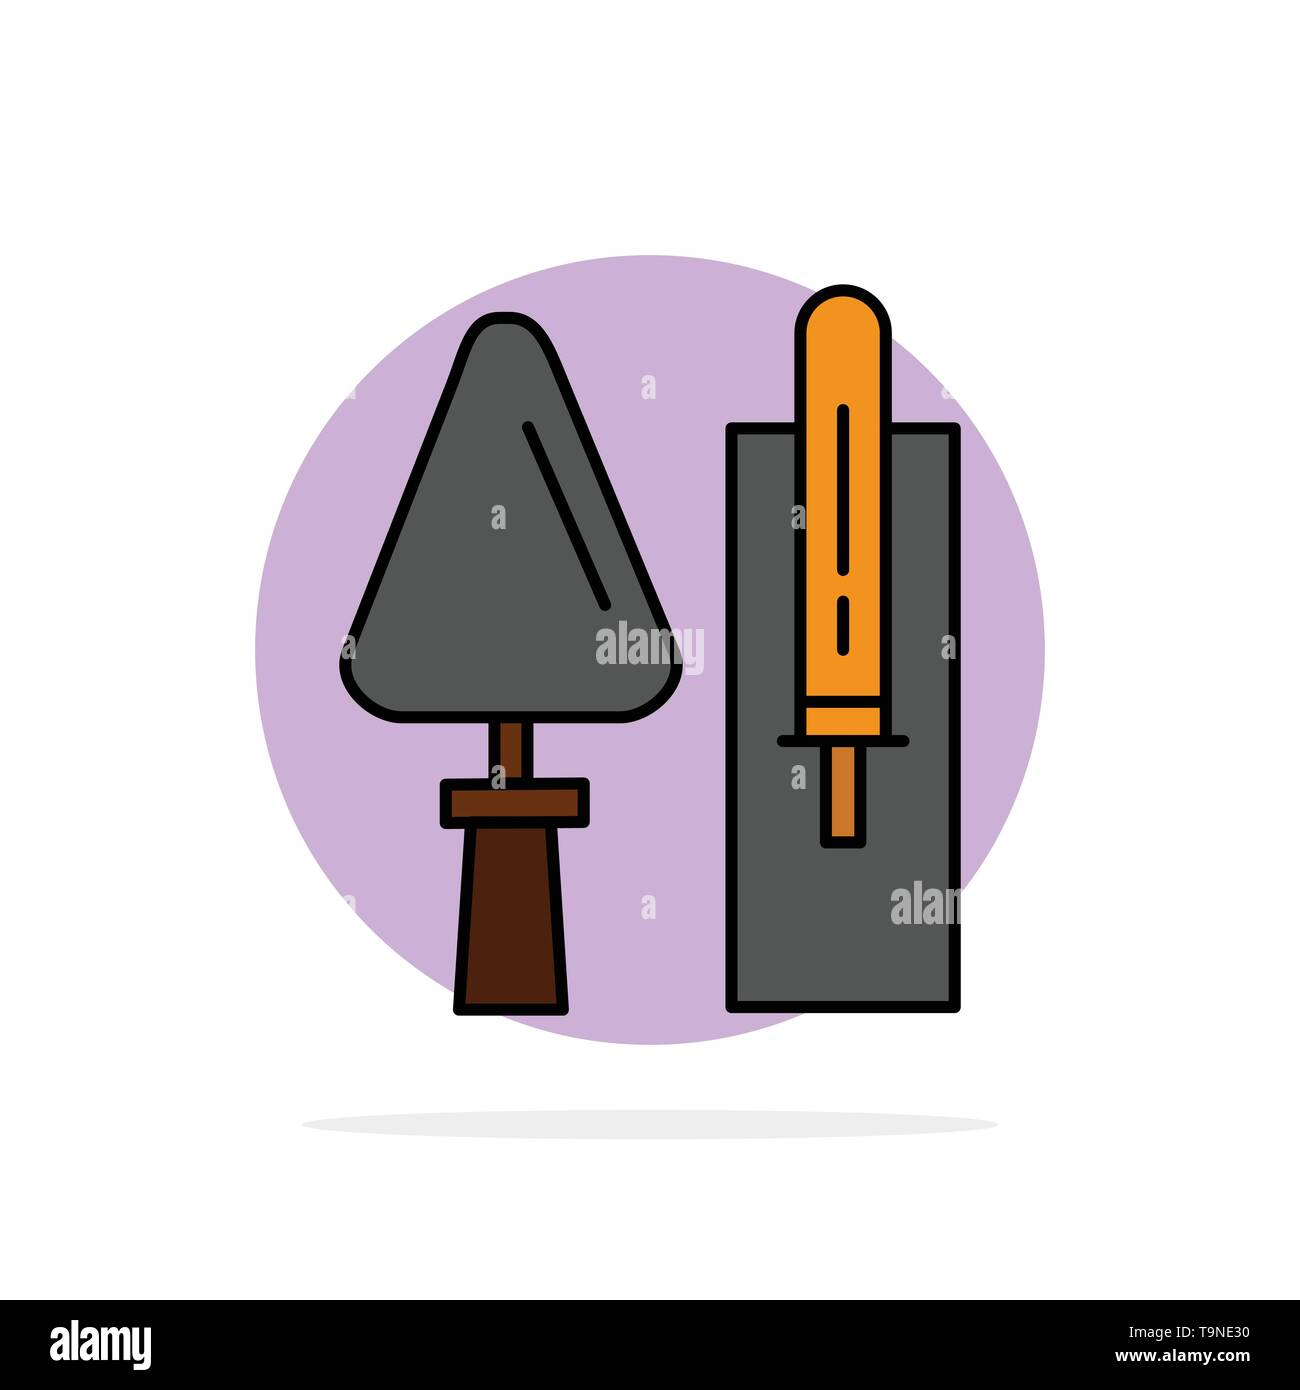 Trowel, Brickwork, Construction, Masonry, Tool Abstract Circle Background Flat color Icon - Stock Image